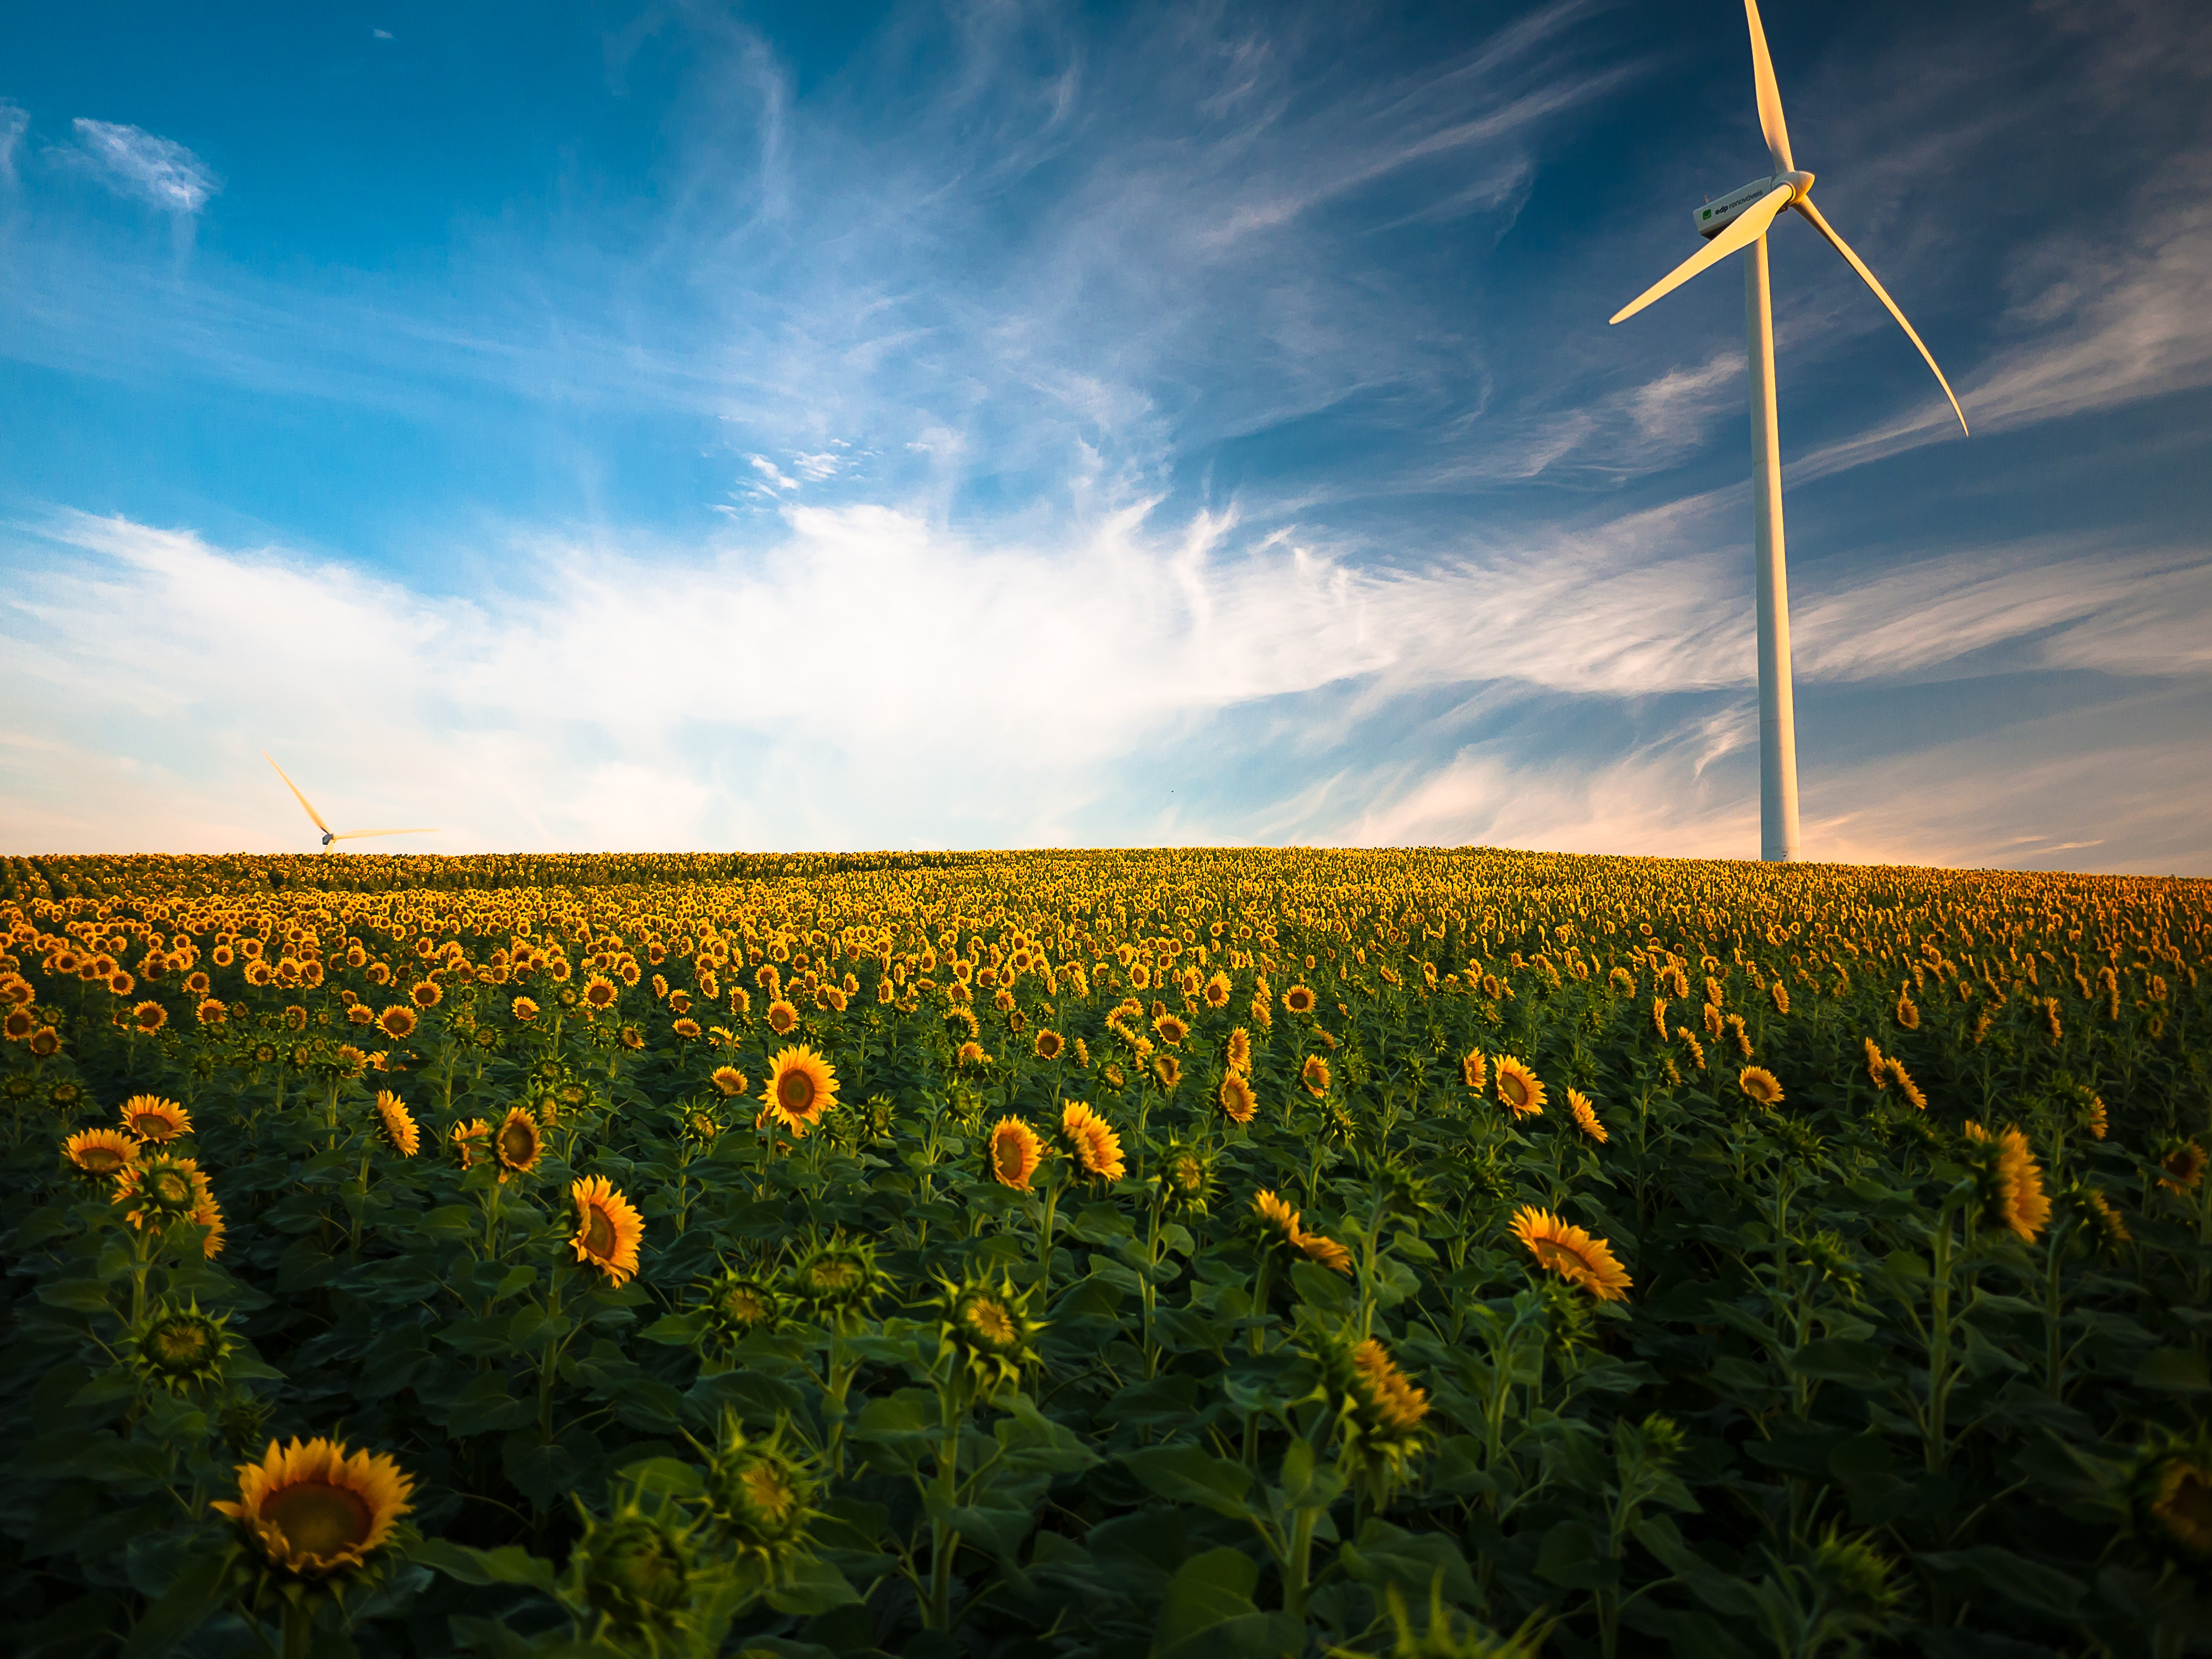 sunflower:turbine field